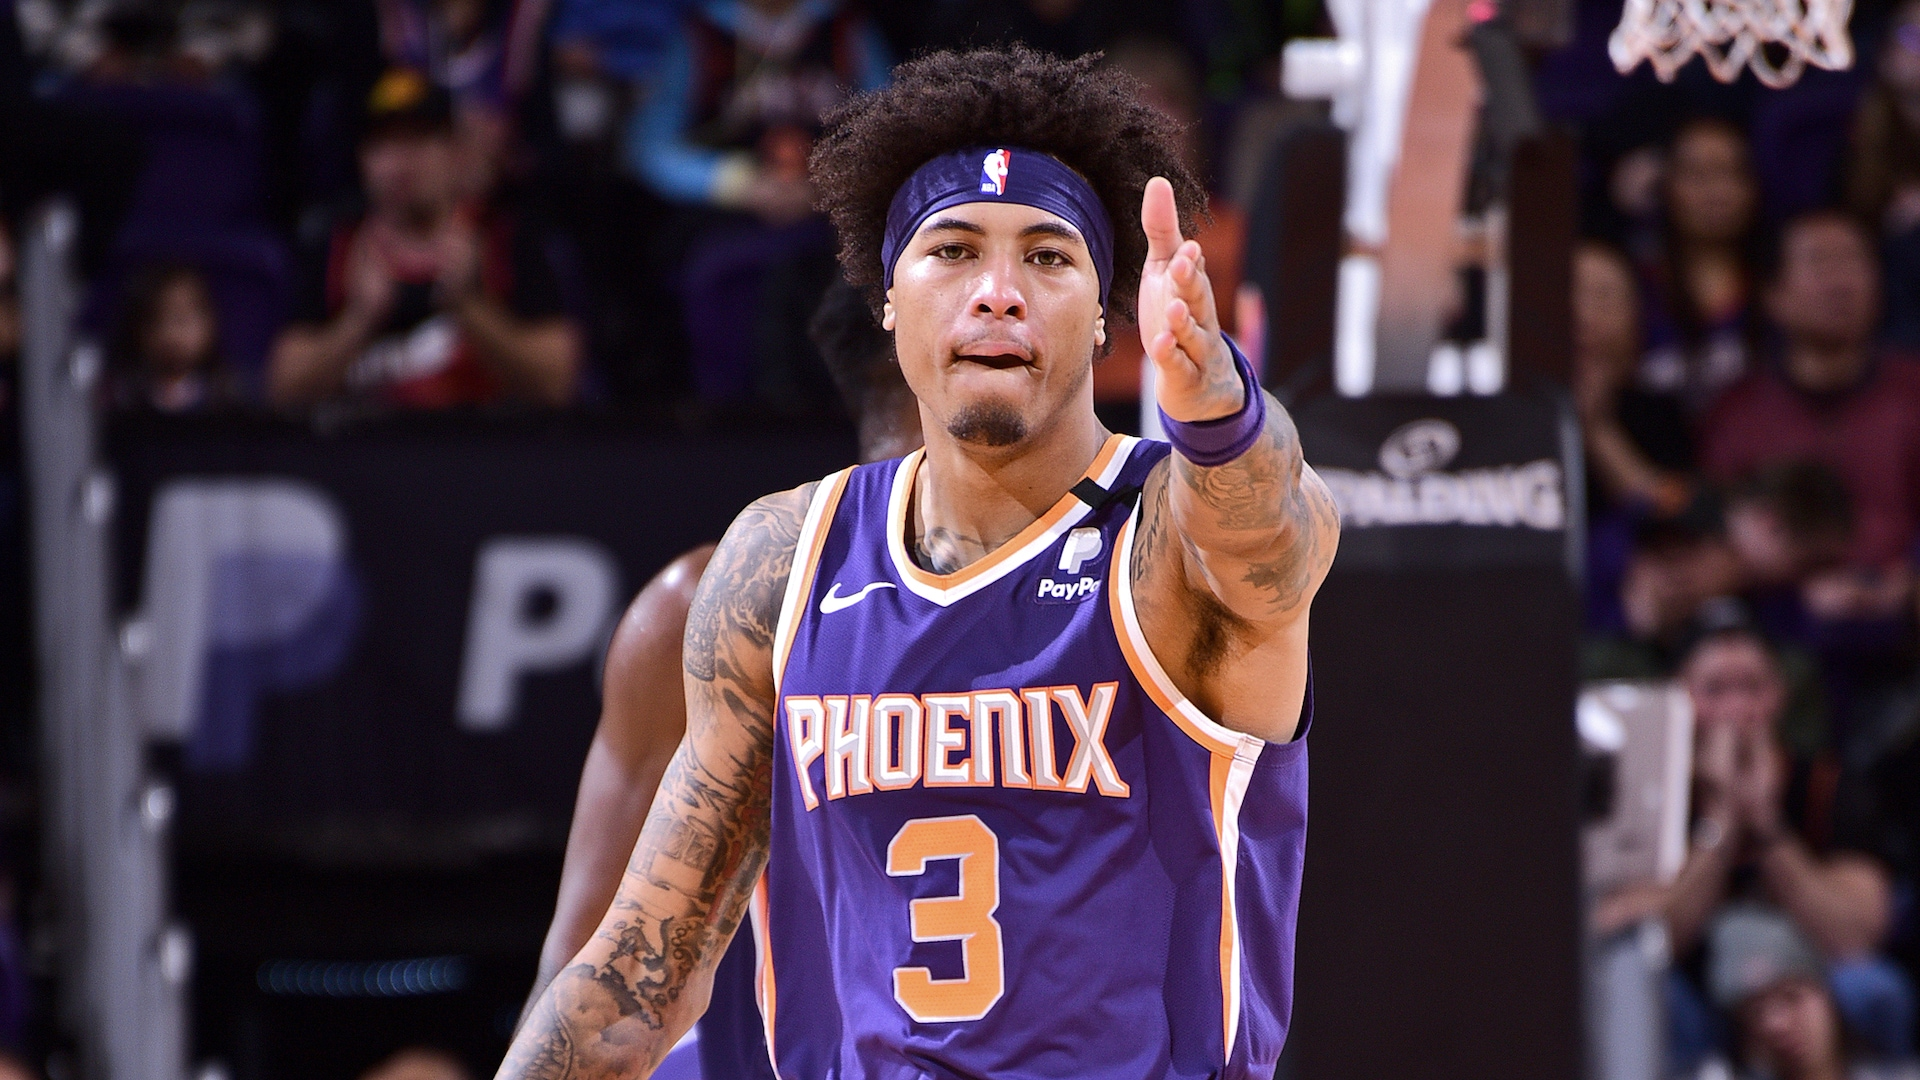 Suns' Kelly Oubre Jr. undergoes arthoscopic surgery on knee, out at least four weeks